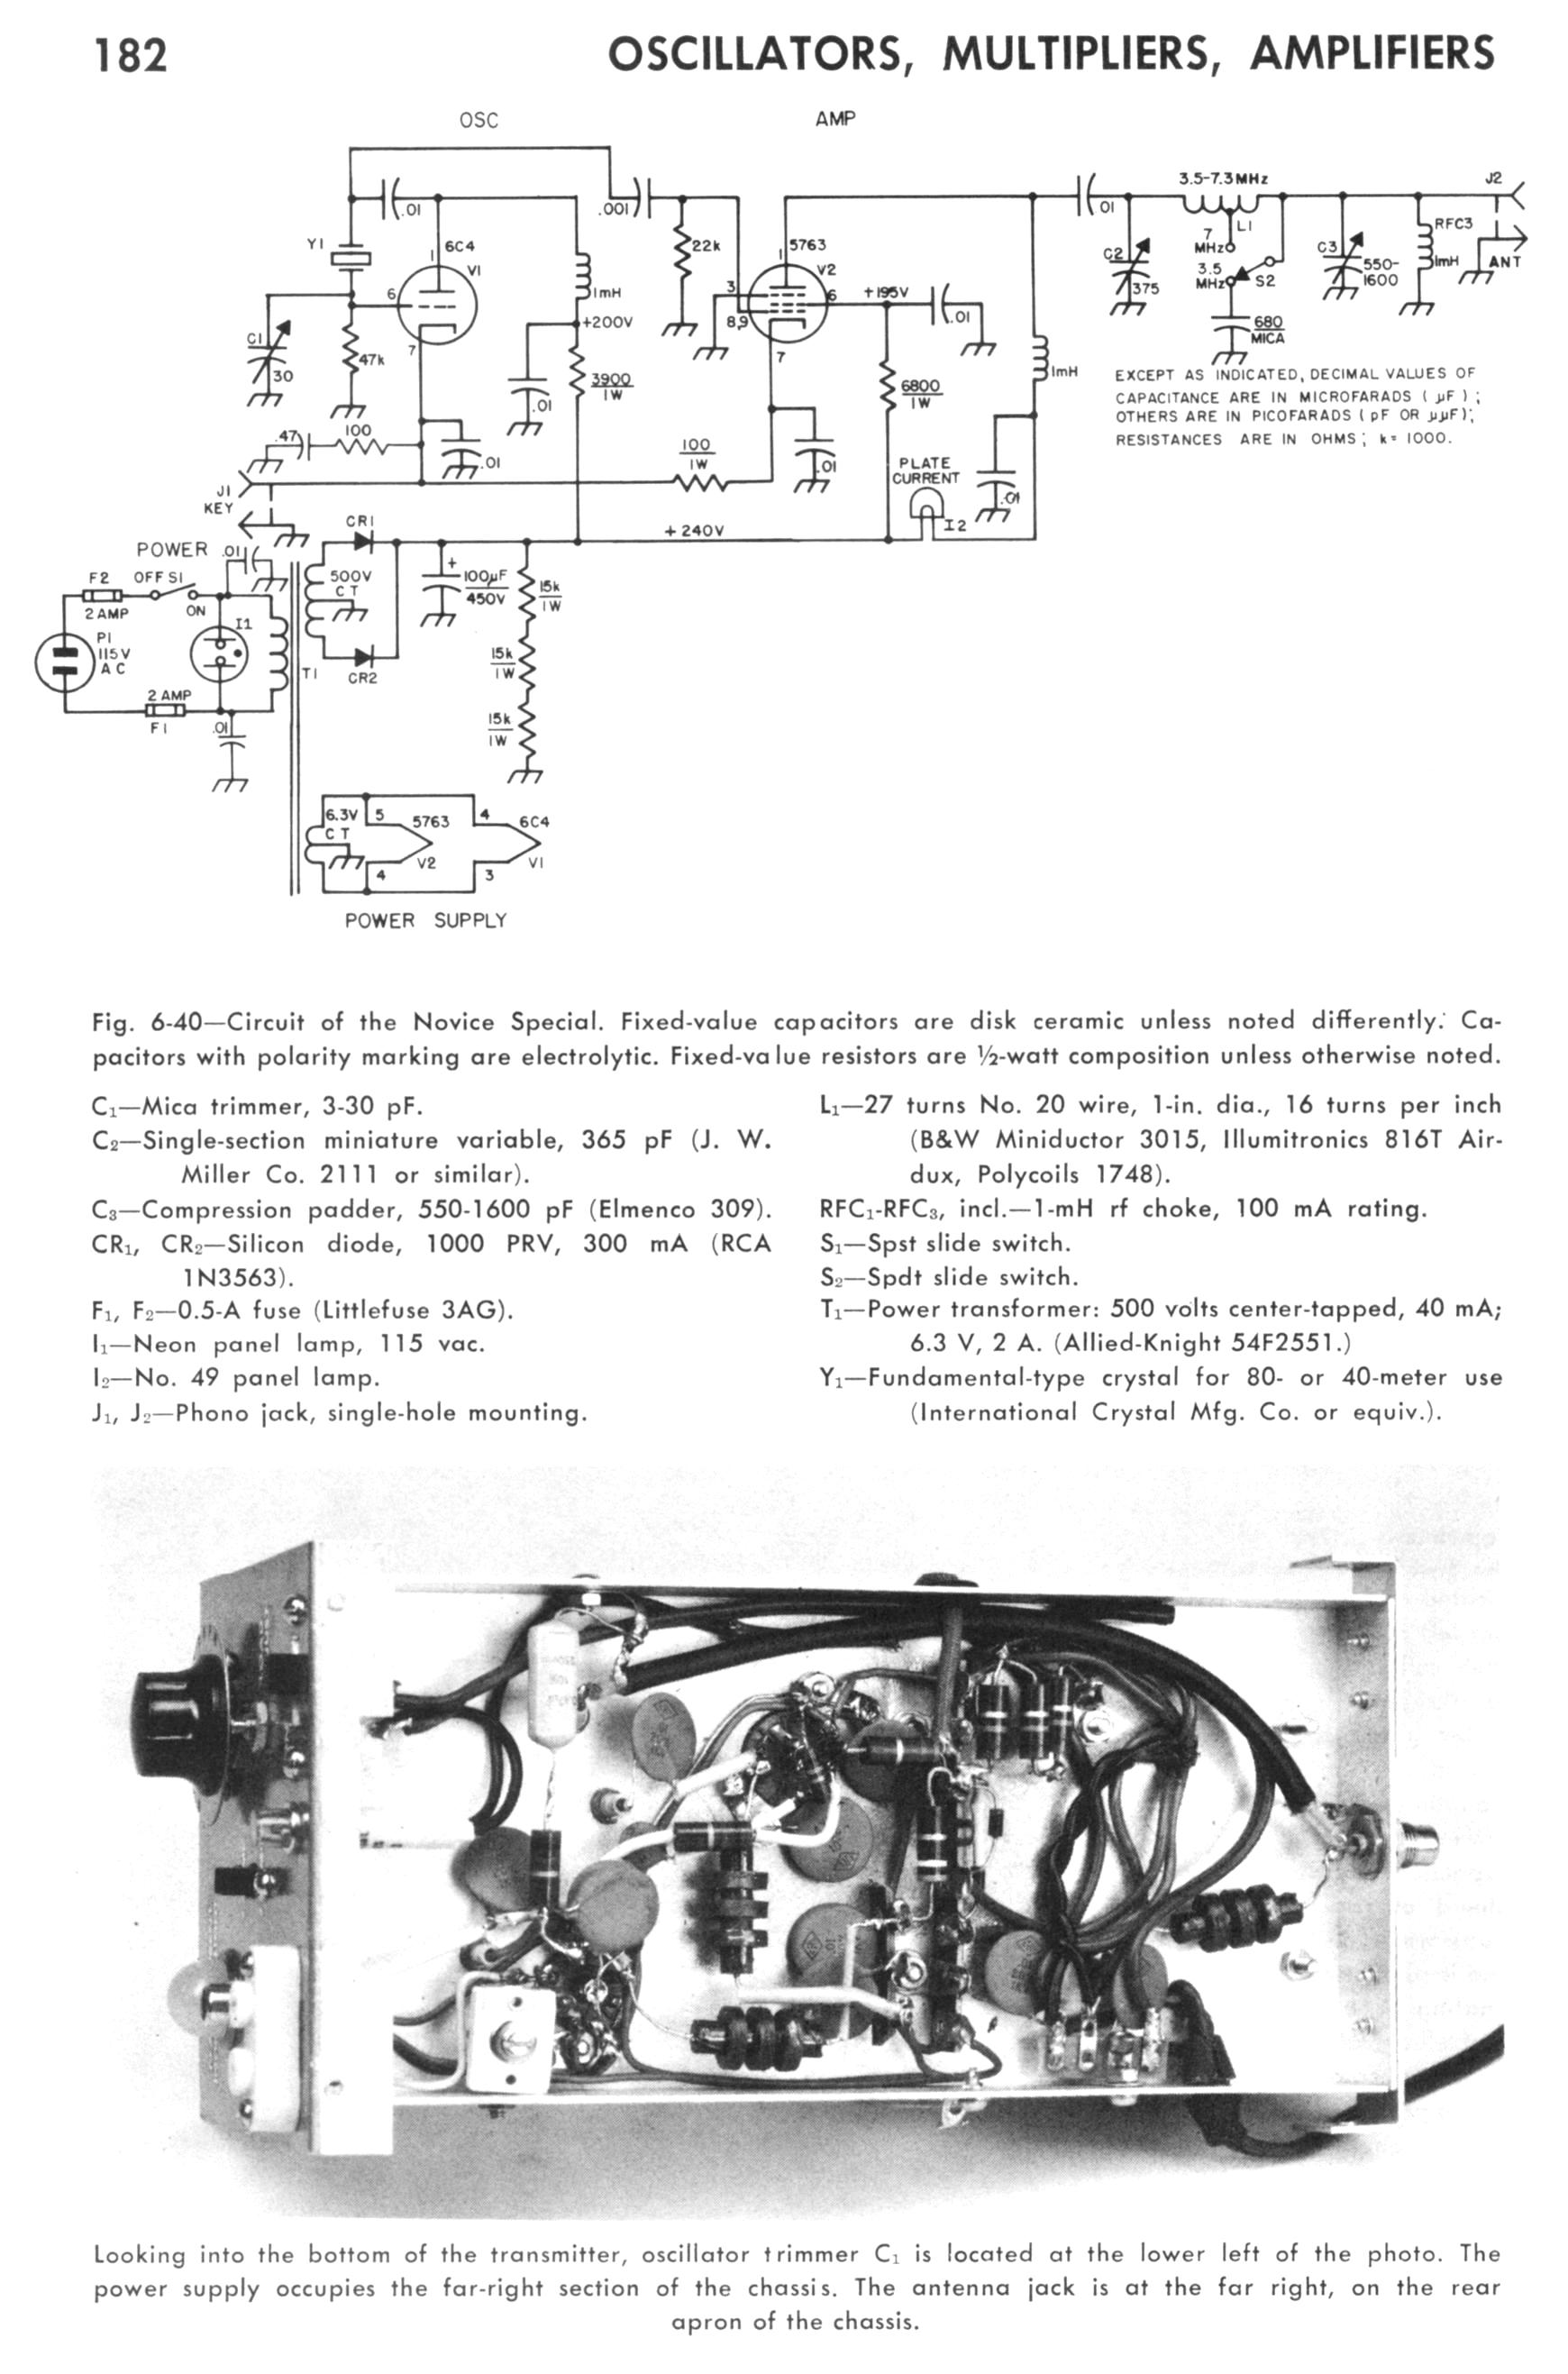 The Novice Special Old Chassis Engineering Schematics Click Here To See Original Schematic That I Used As Published In Above Mentioned 1970 Arrl Handbook